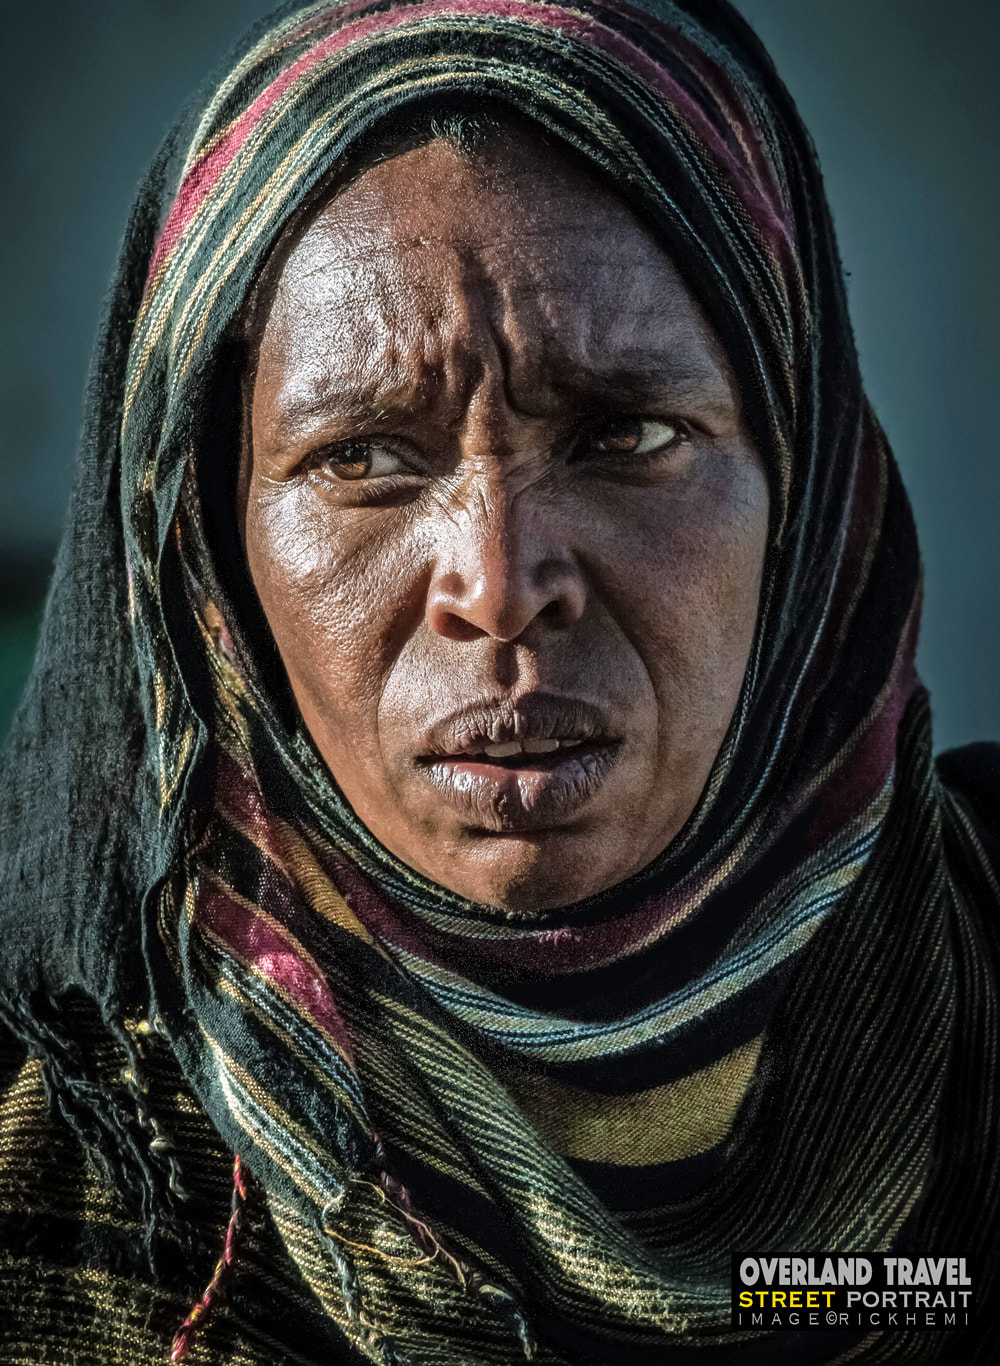 overland travel and transit Africa, street snap portrait by Rick Hemi